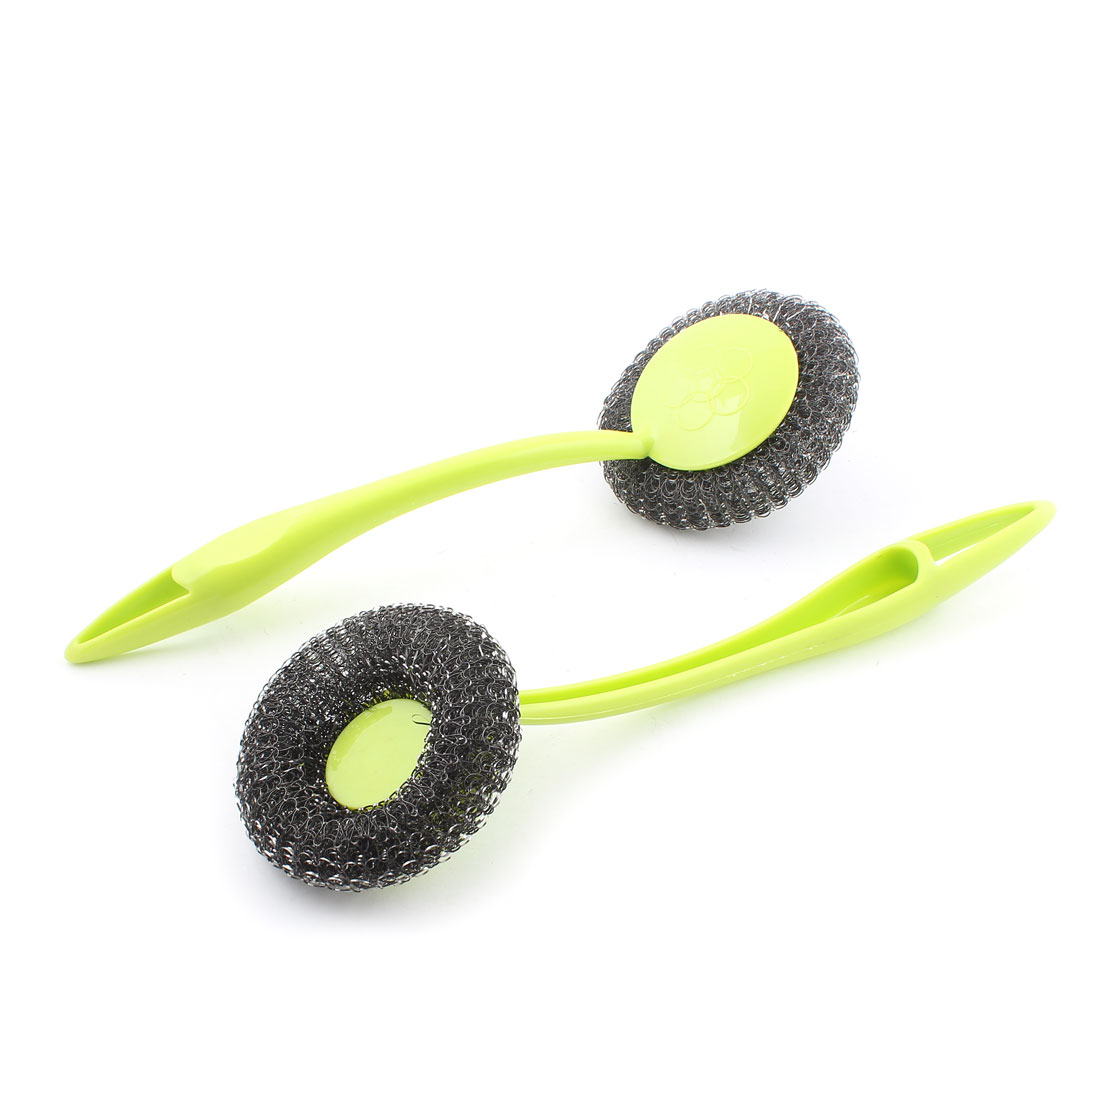 Kitchenware Plastic Handgrip Pan Pot Bowl Cleaning Tool Steel Wire Ball Brush Green 2PCS